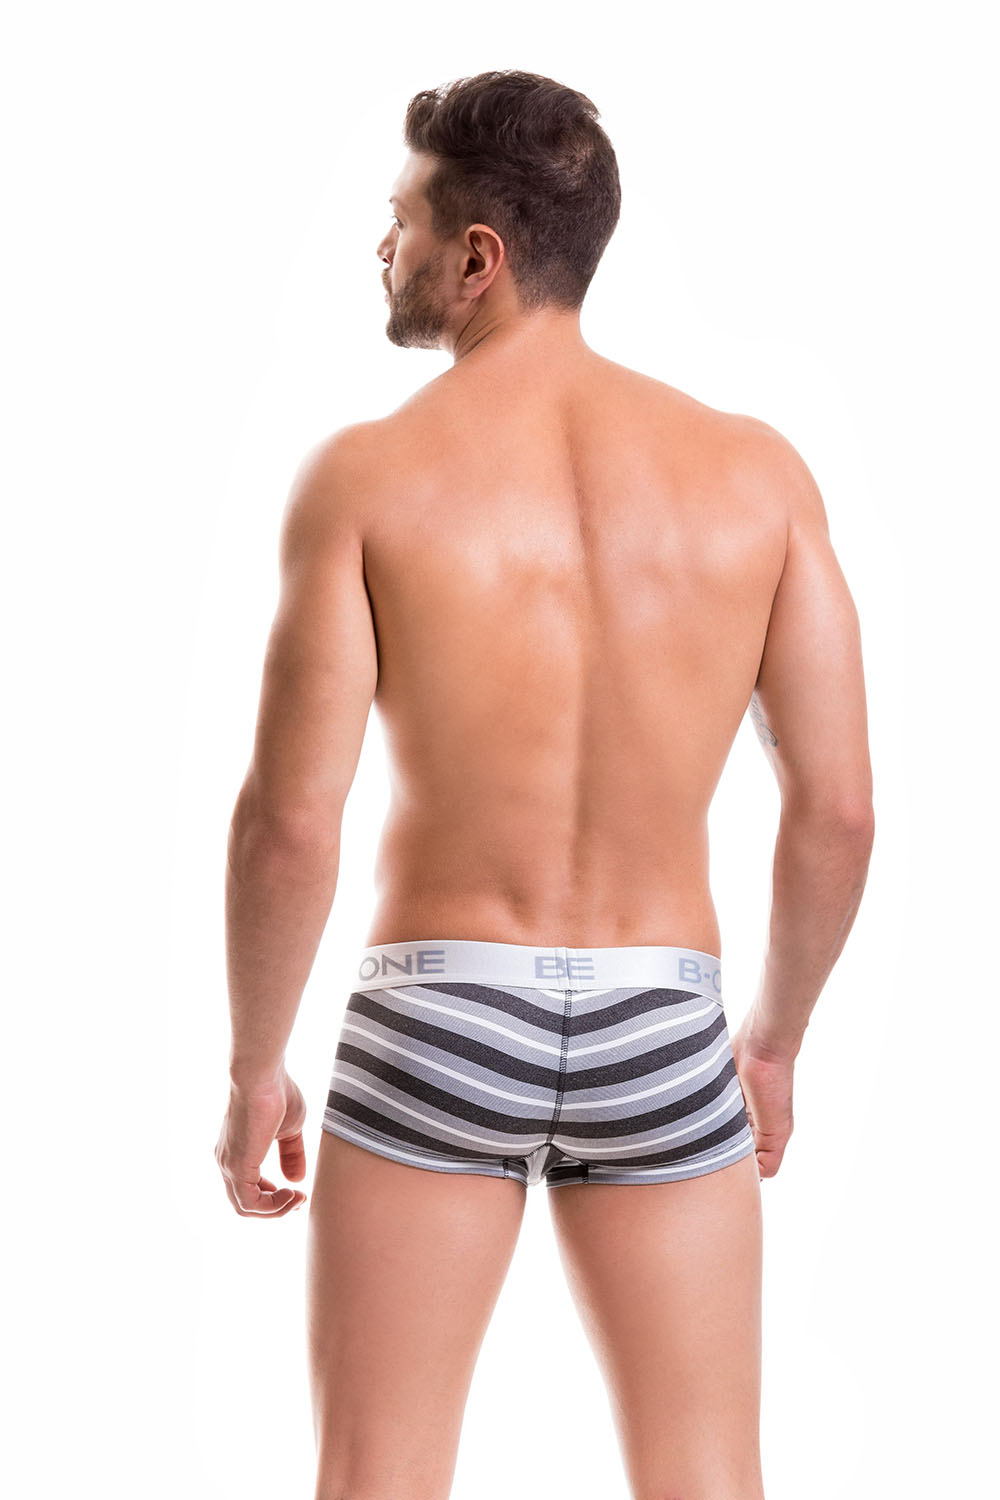 B-ONE 0005-2 grey M Boxer Clinton